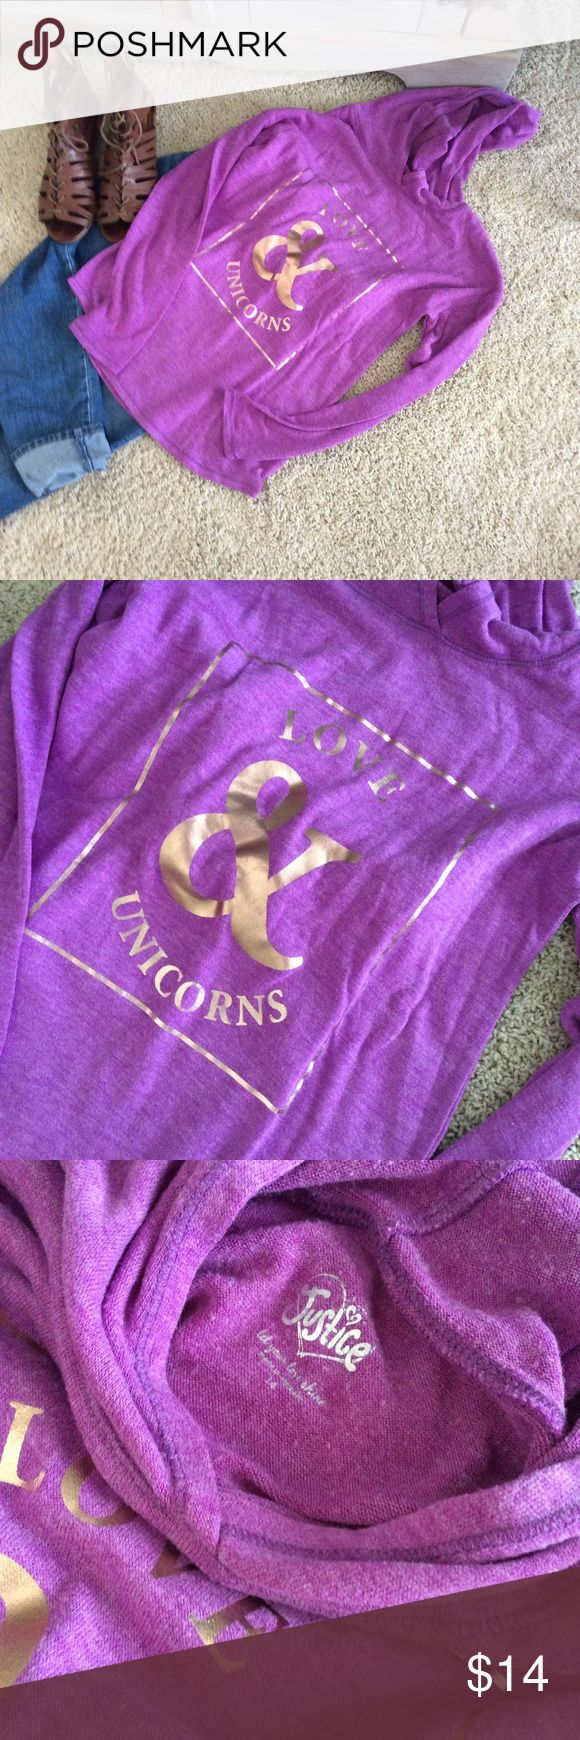 "Love and unicorns hoodie Purple hoodie ""love and unicorns"" Justice Shirts & Tops Sweatshirts & Hoodies"